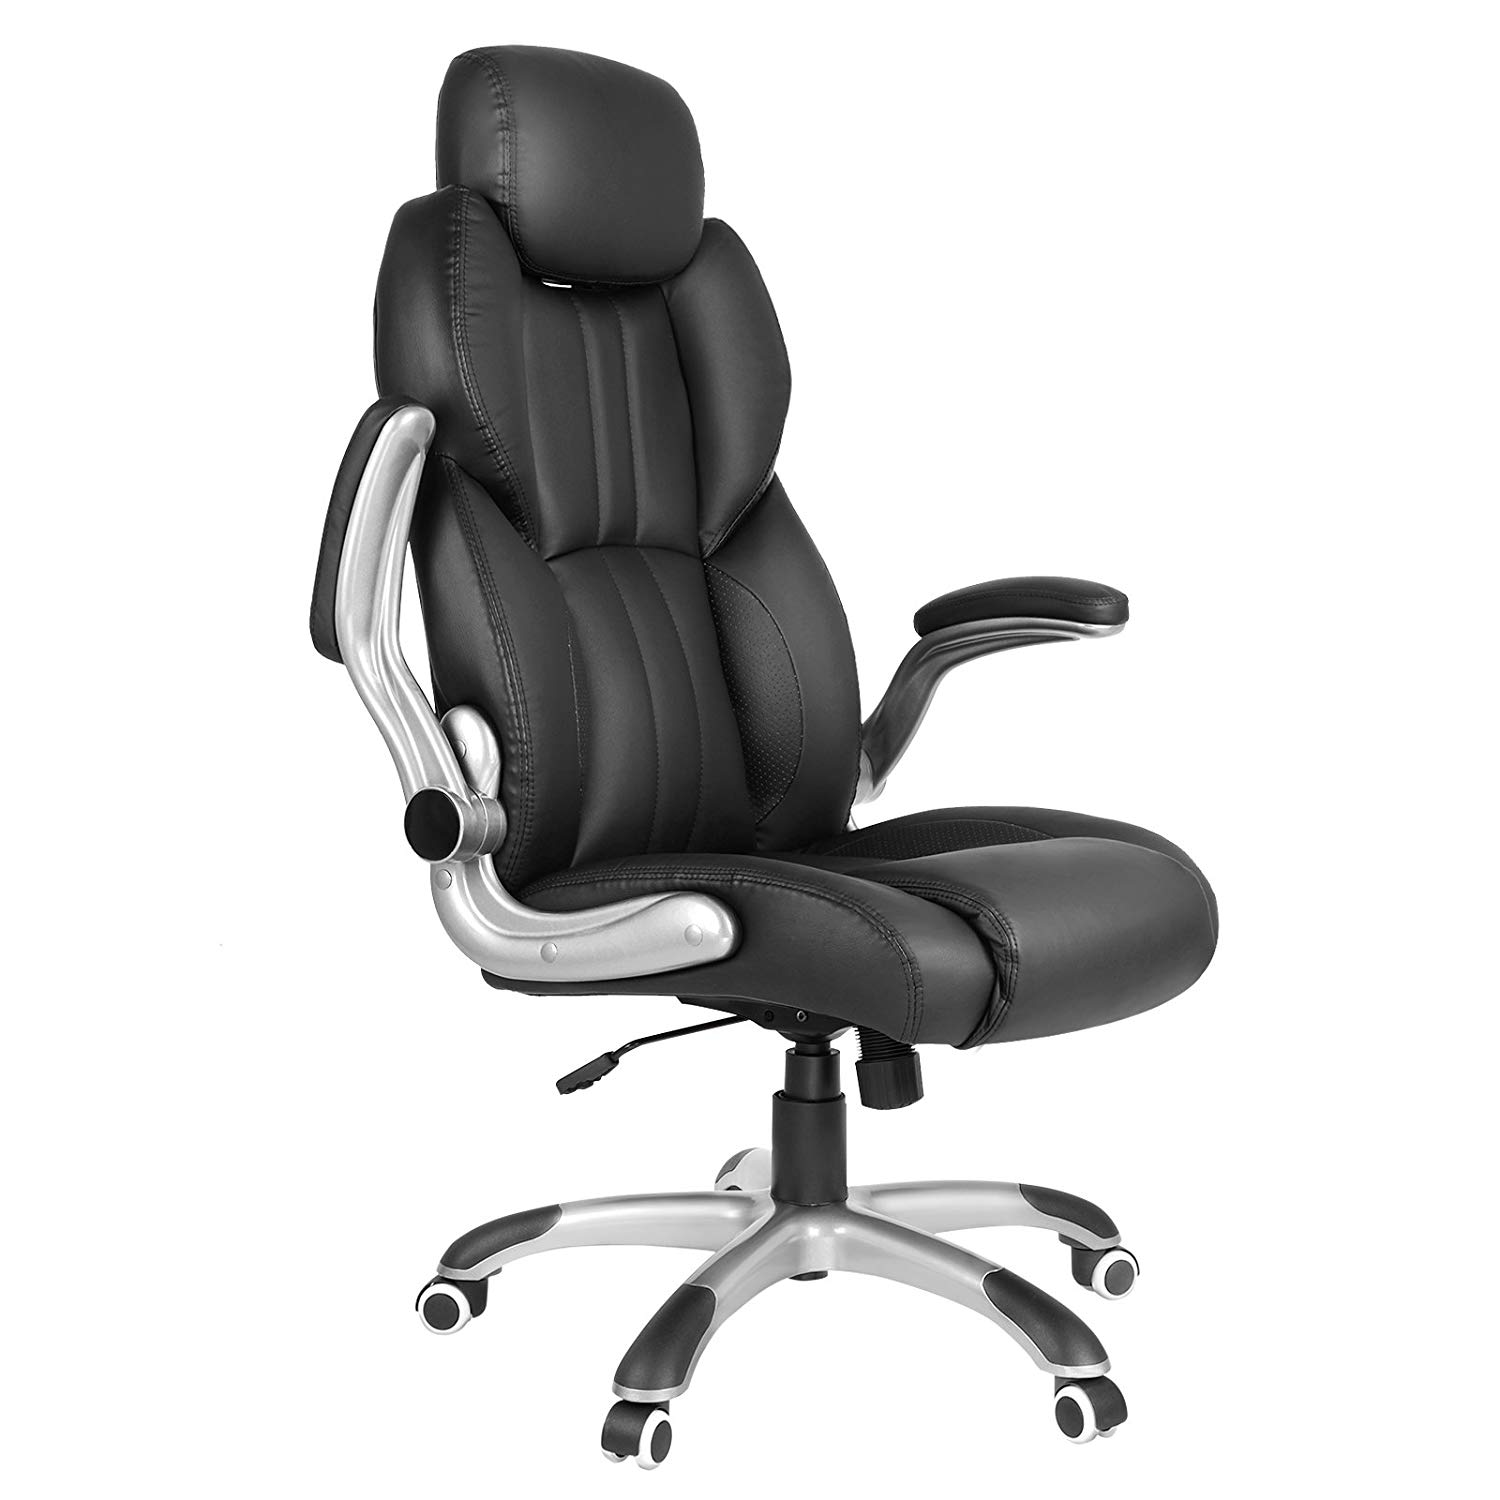 SONGMICS Ergonomic Gaming office Chair, High-back Racing Chair, Height Adjustable, with Adjustable Headrest and Seat, High Backrest, Thickened Padding, Rocking Function, Black, UOBG65BK